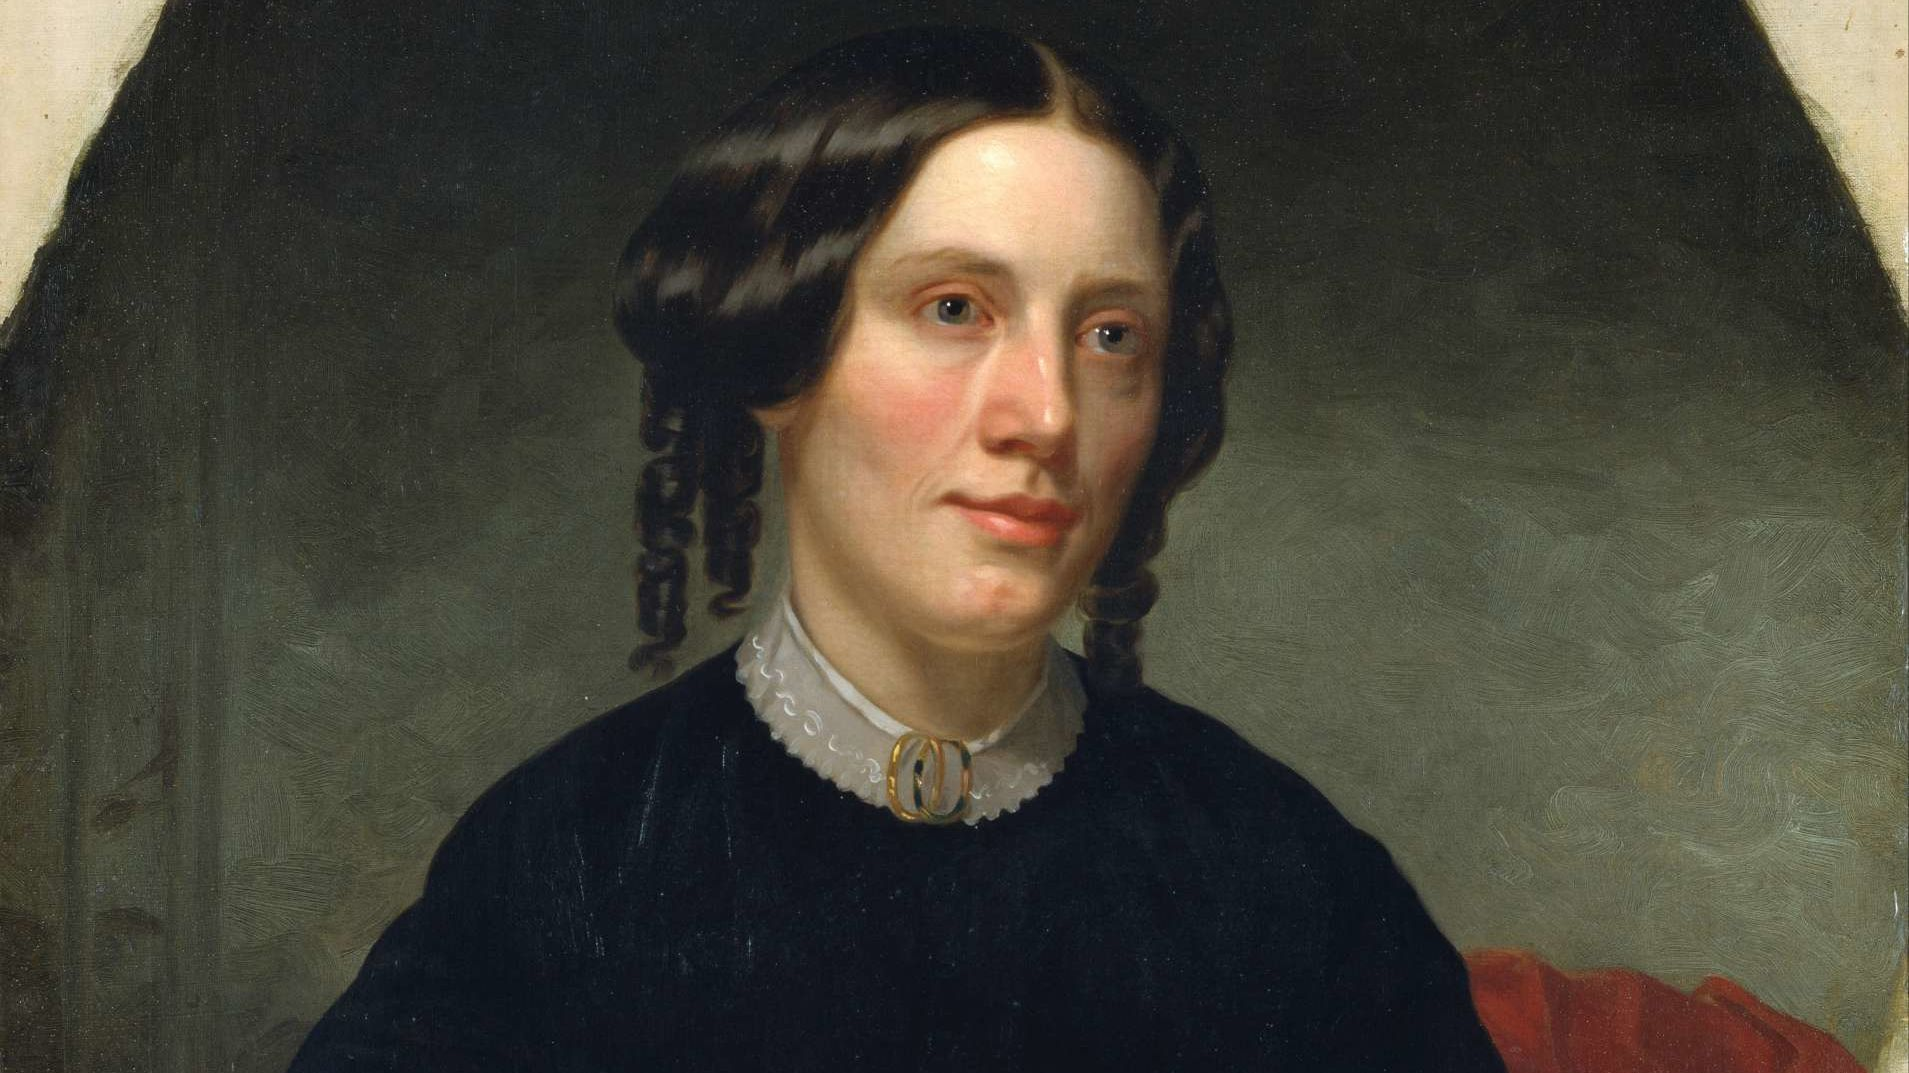 10 Amazing Facts About Harriet Beecher Stowe